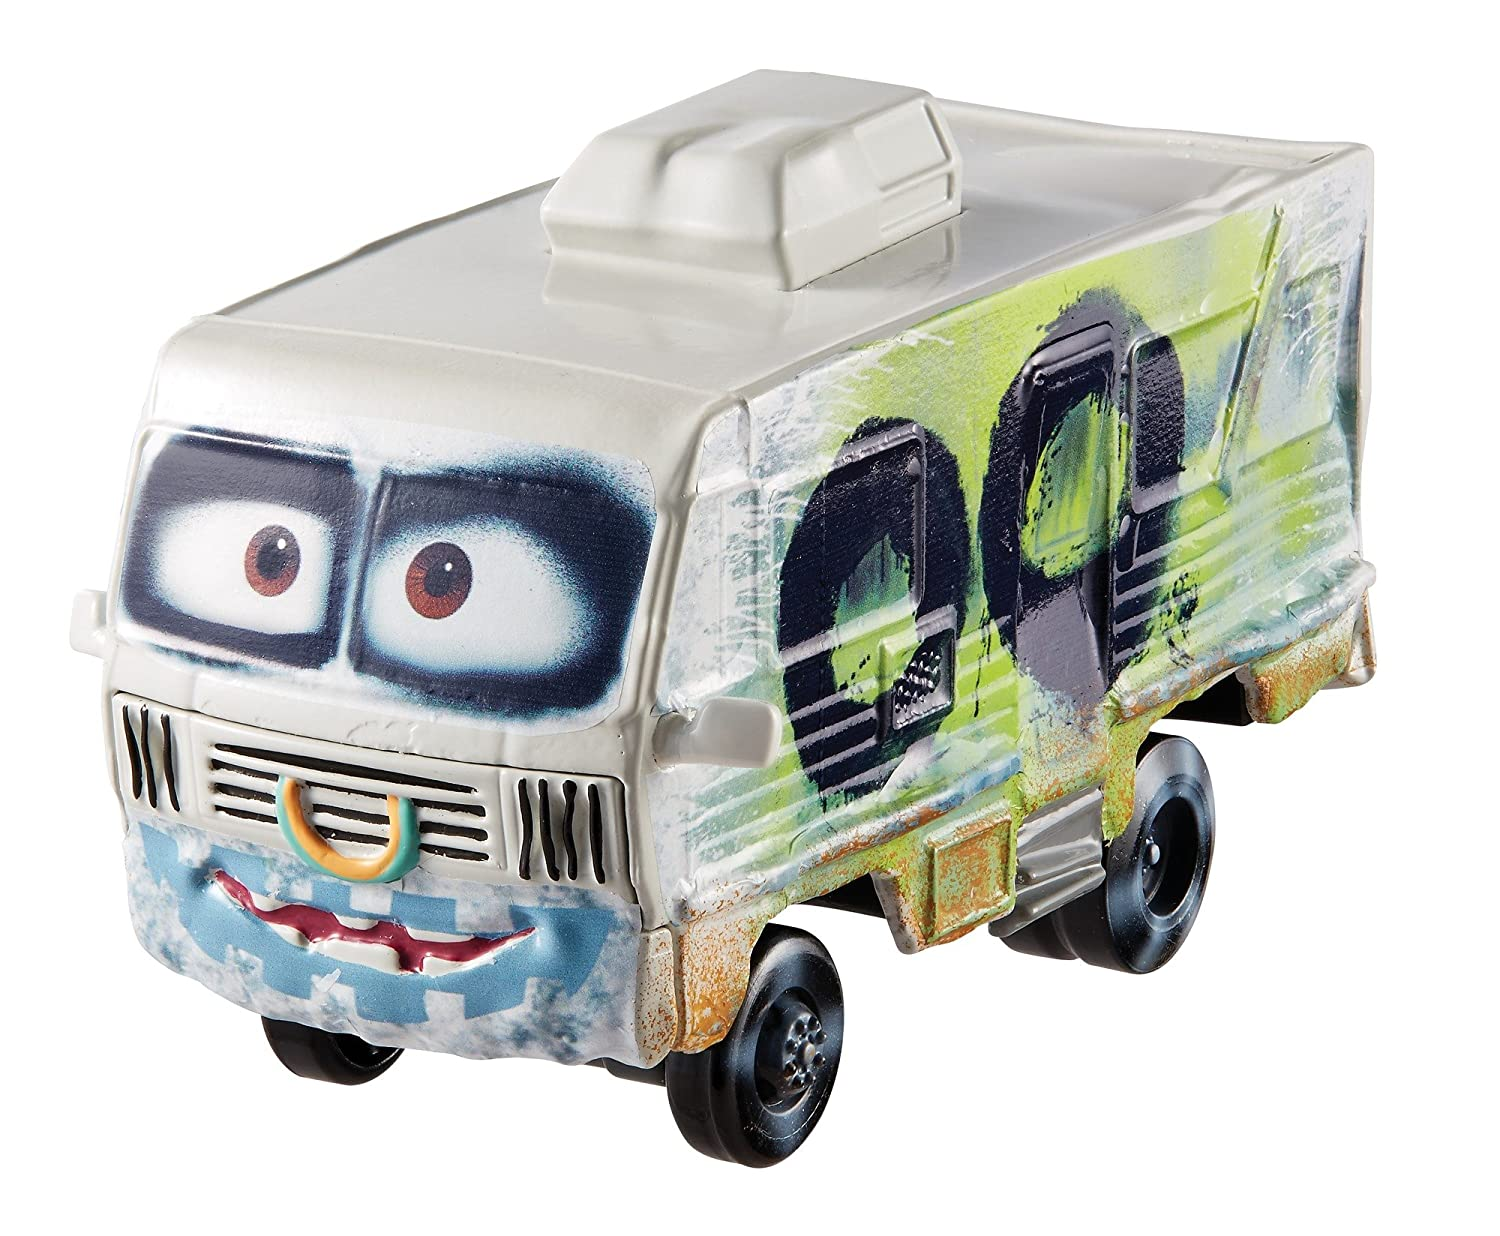 Disney/Pixar Cars 3 Deluxe Arvy Vehicle Mattel DXV91